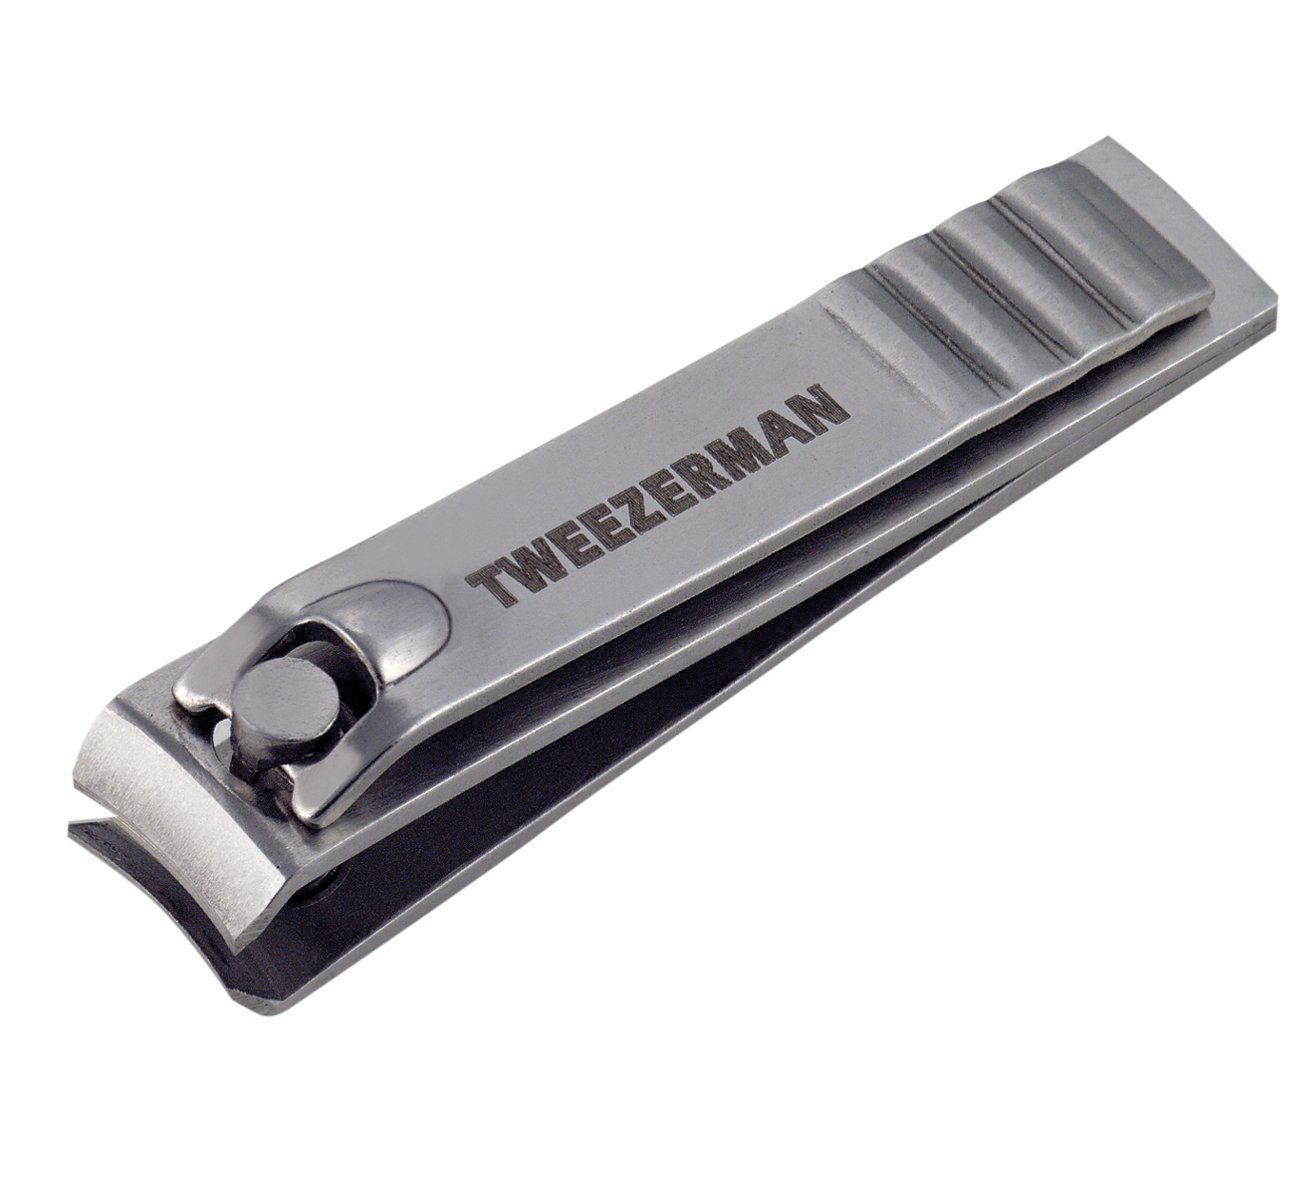 Amazon.com : Tweezerman STRAIGHT TOENAIL CLIPPER 5163 : Stainless ...